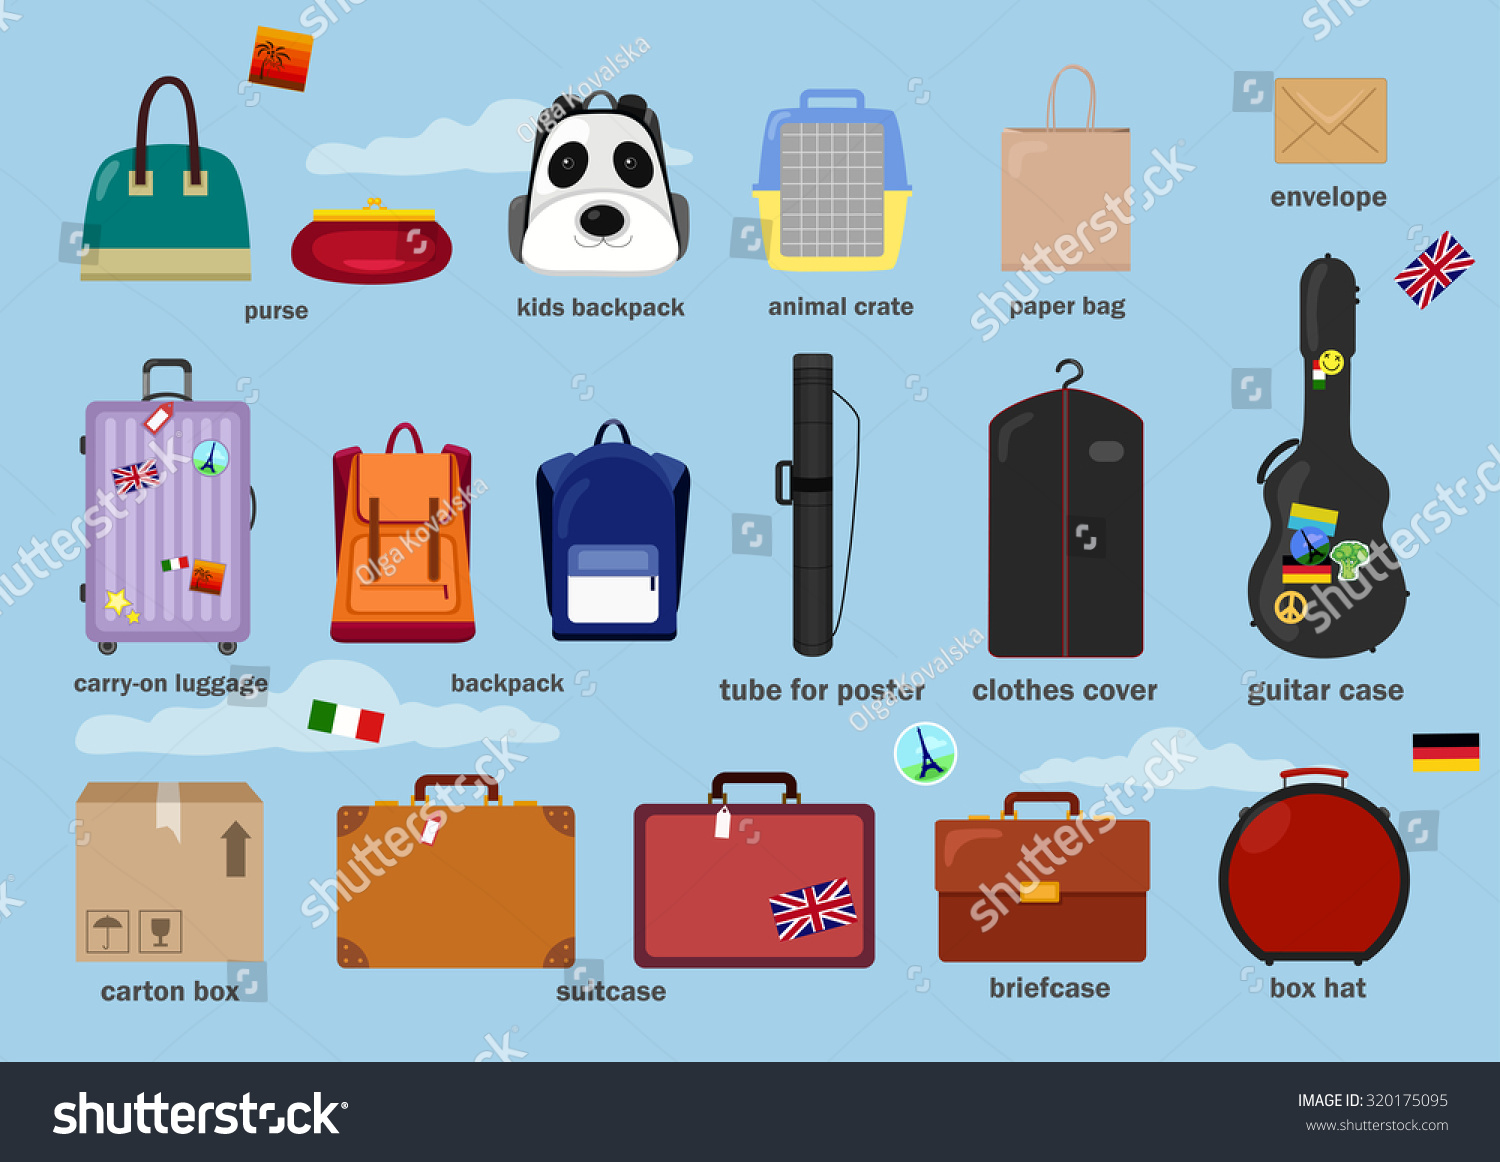 Different Types of Bags for Childrens